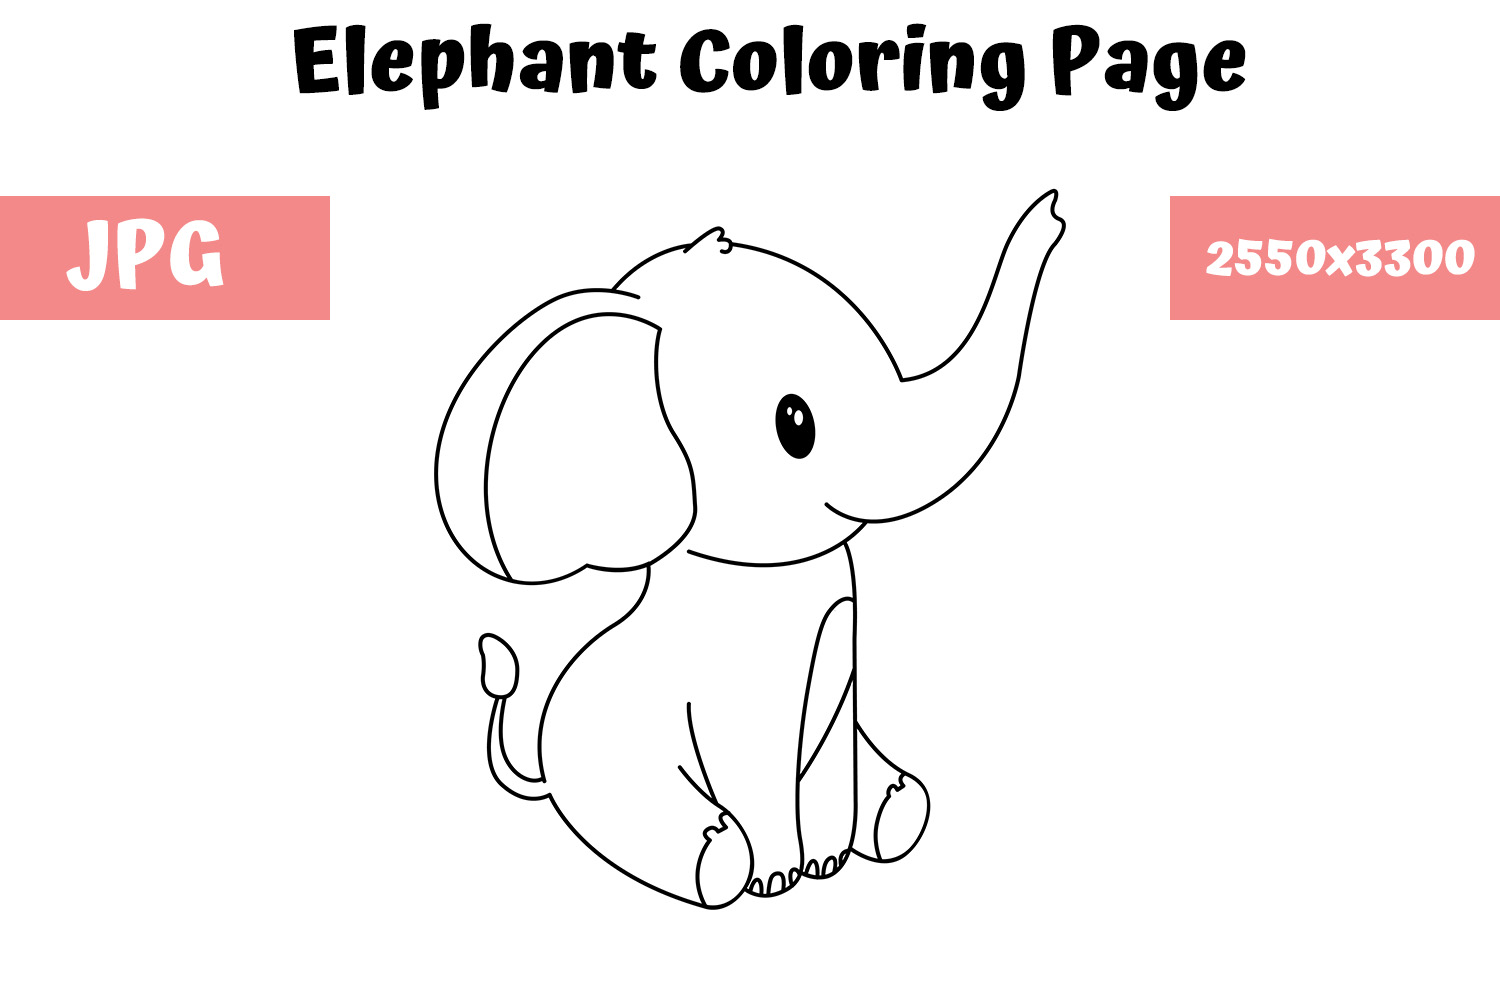 - Elephant Coloring Book Page For Kids (Graphic) By MyBeautifulFiles